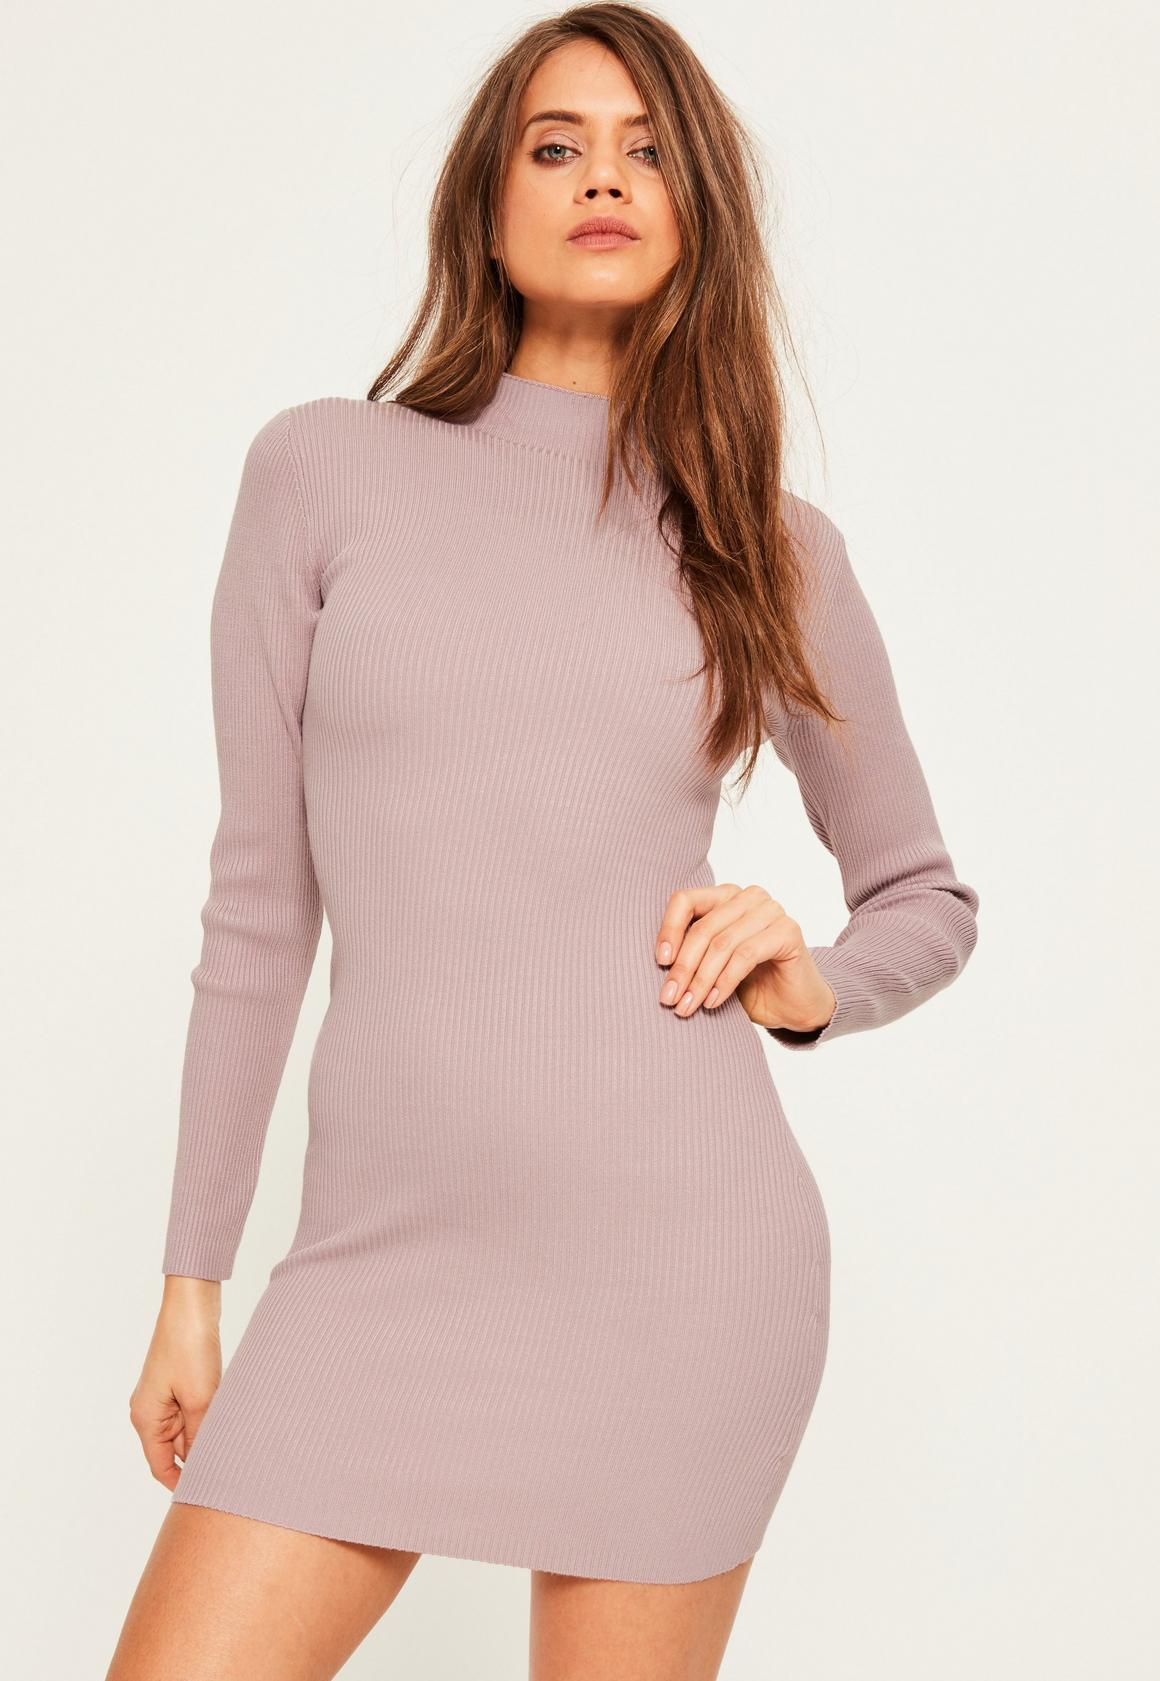 Mauve Basic High Neck Mini Sweater Dress | Missguided